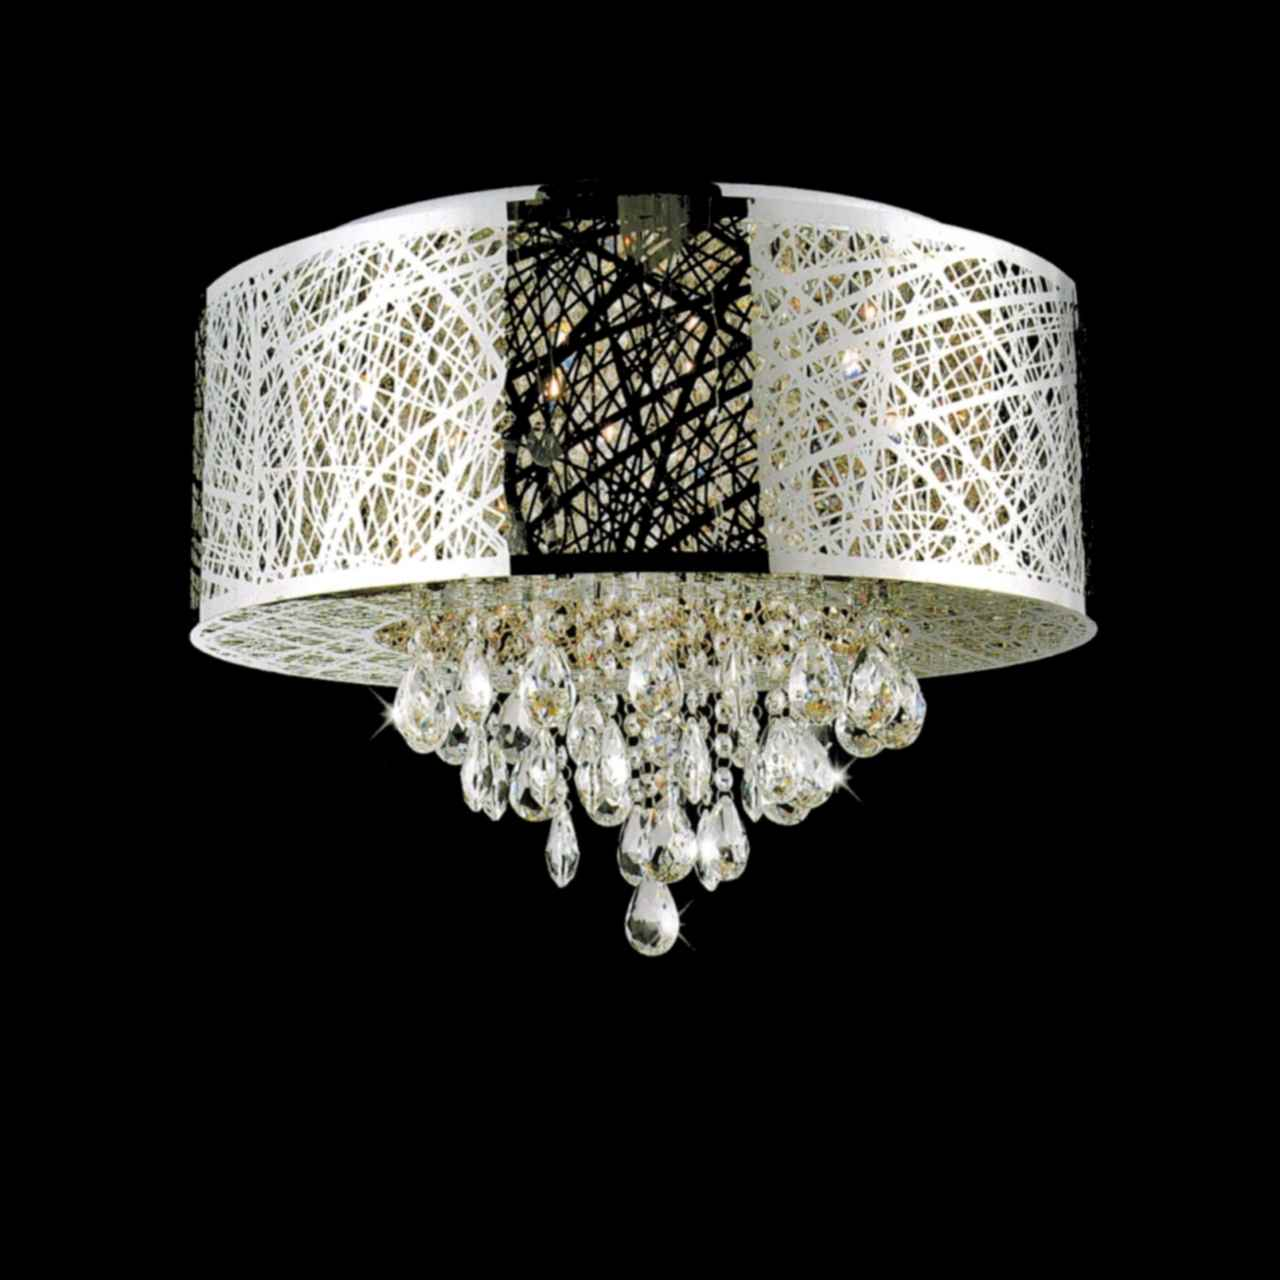 drum bella chandelier shades chandeliers tall lights lighting for with clear romanelli ceiling